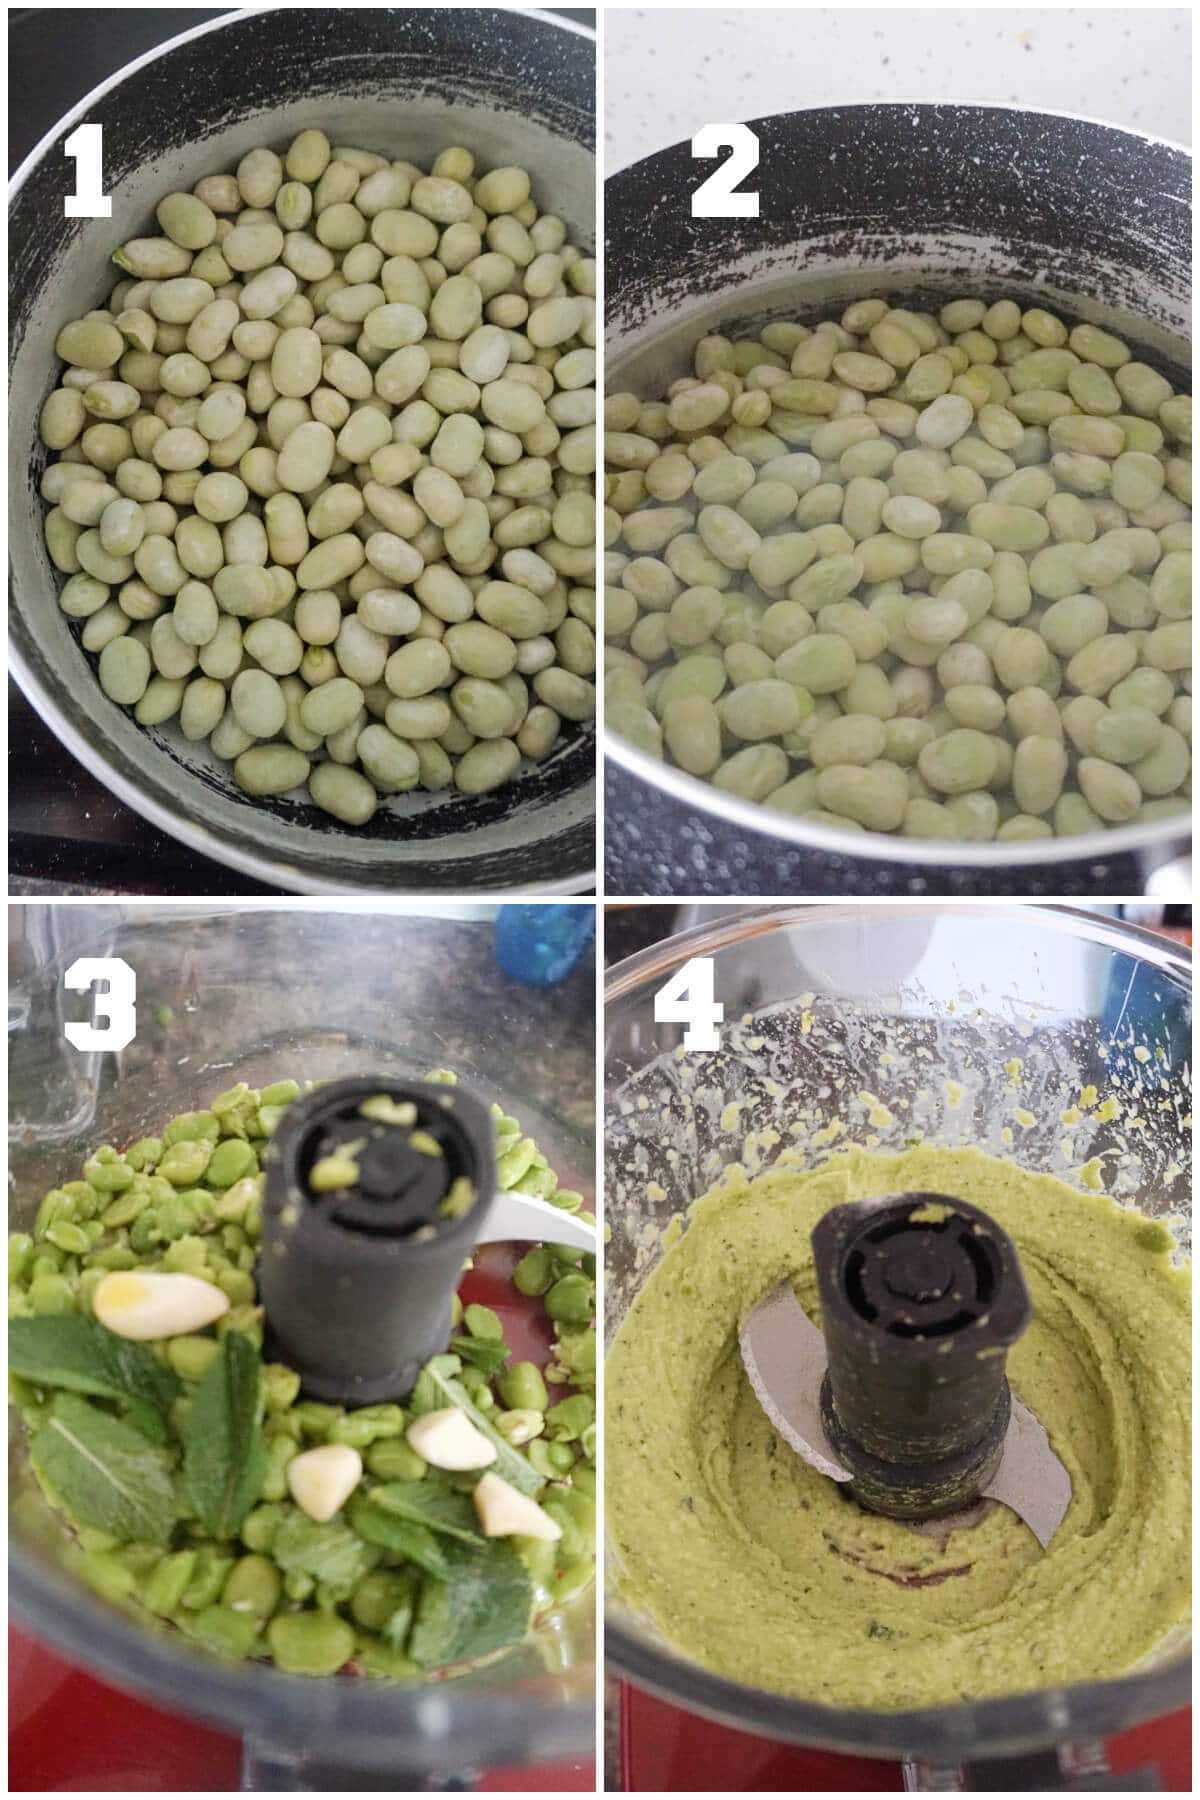 Collage of 4 photos to show how to make broad bean dip